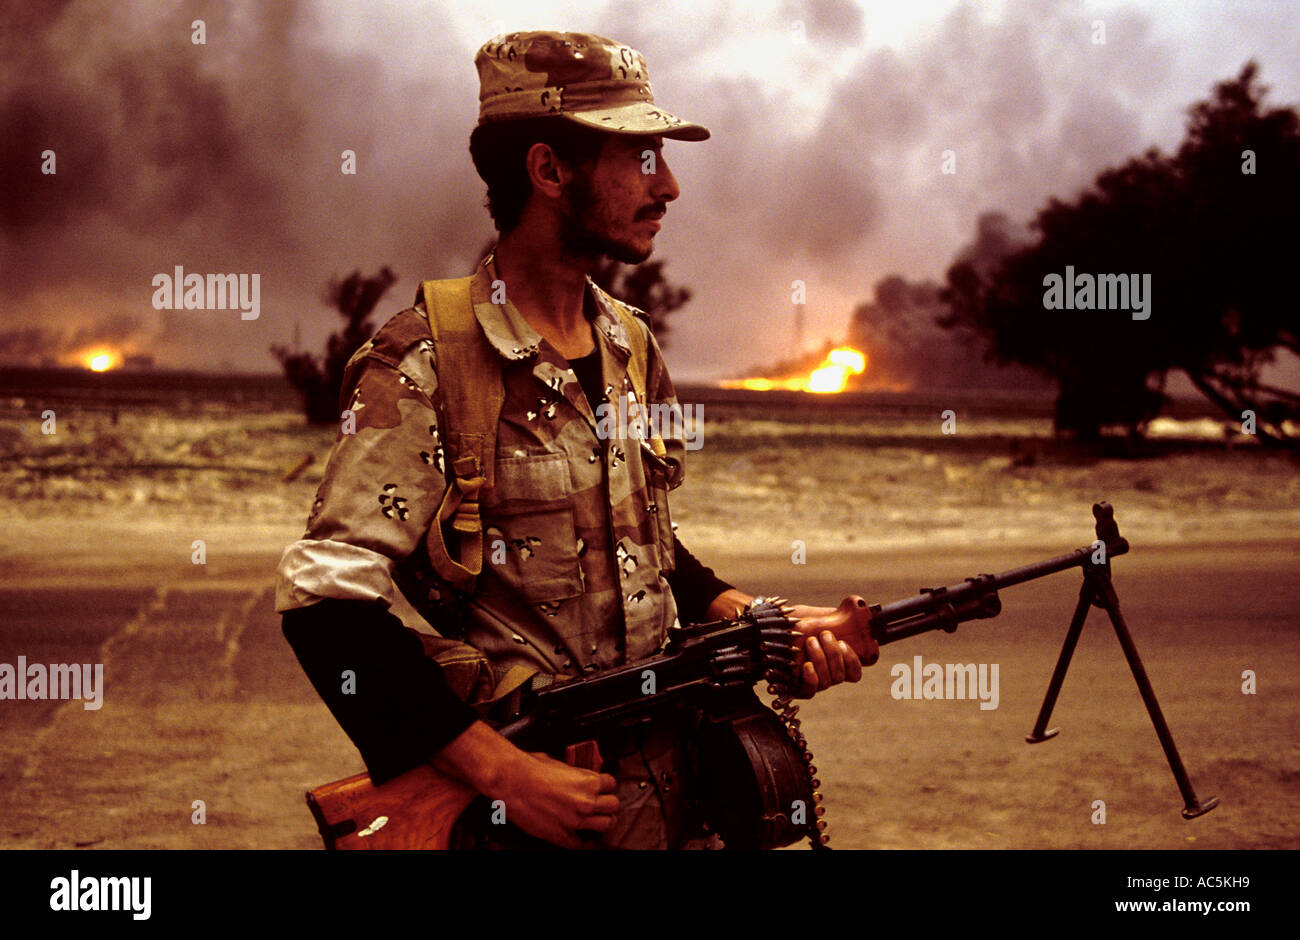 Oil fires near the Iraqi border in war torn kuwait 1991 Stock Foto